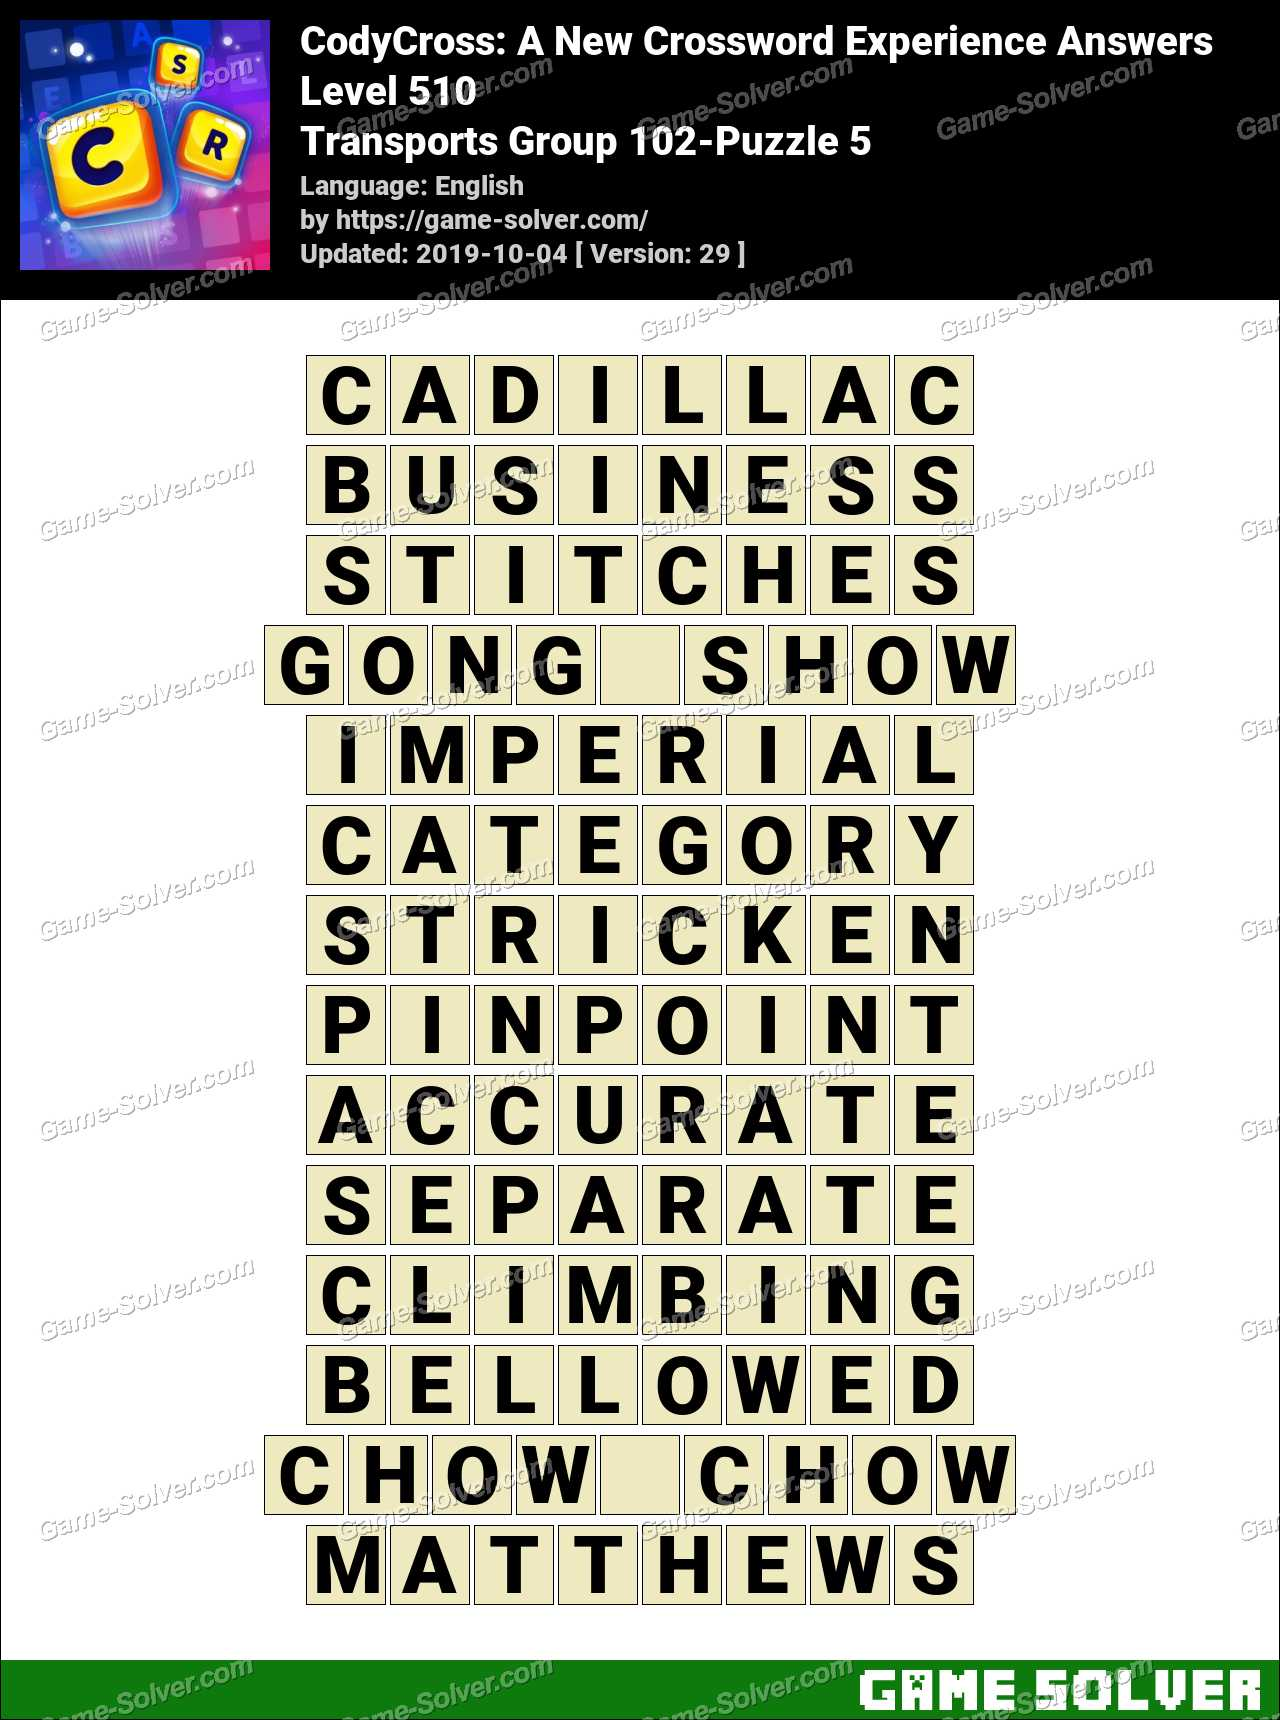 CodyCross Transports Group 102-Puzzle 5 Answers